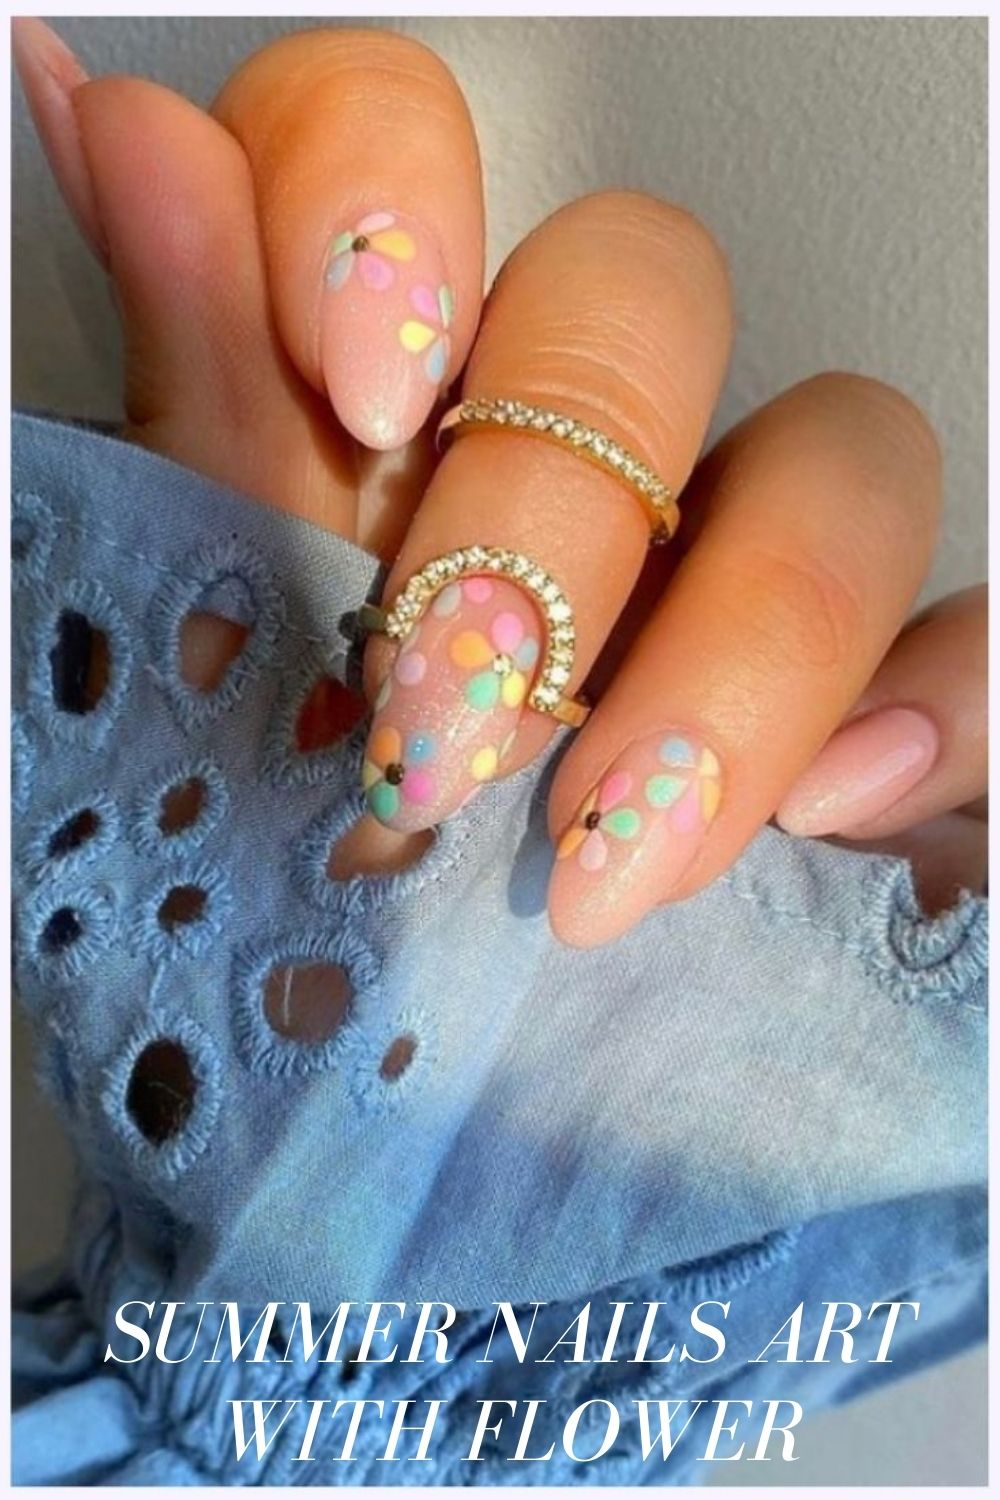 Short nail shapes with acrylic flower nails